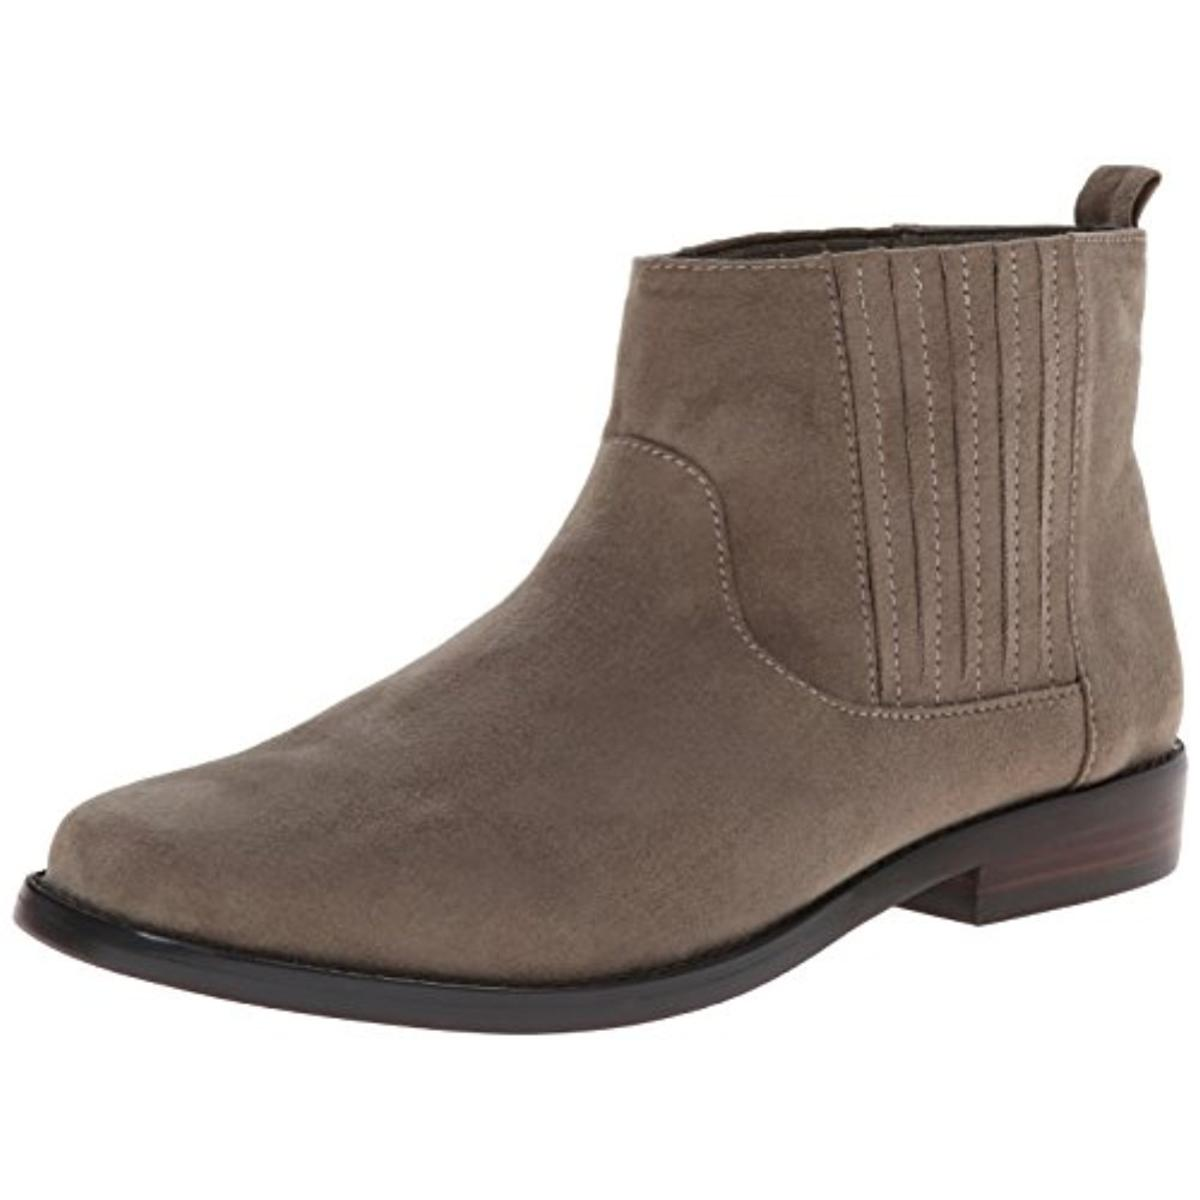 g h bass co 7804 womens blaine gray ankle boots shoes